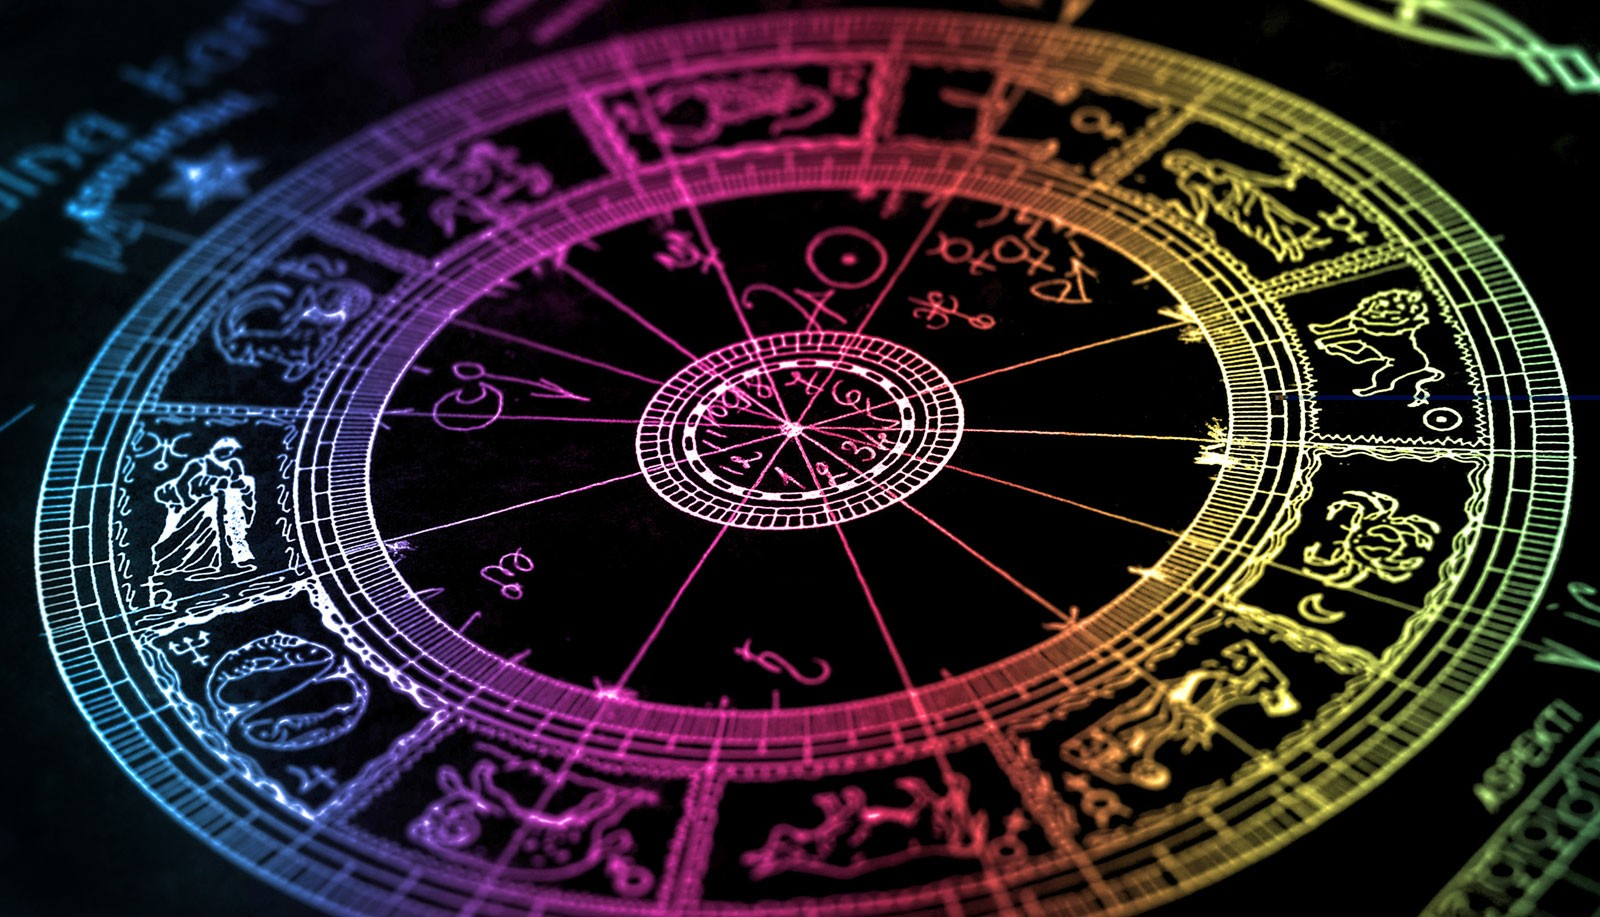 zodiac signs and meanings of astrology signs on whats your sign. Black Bedroom Furniture Sets. Home Design Ideas